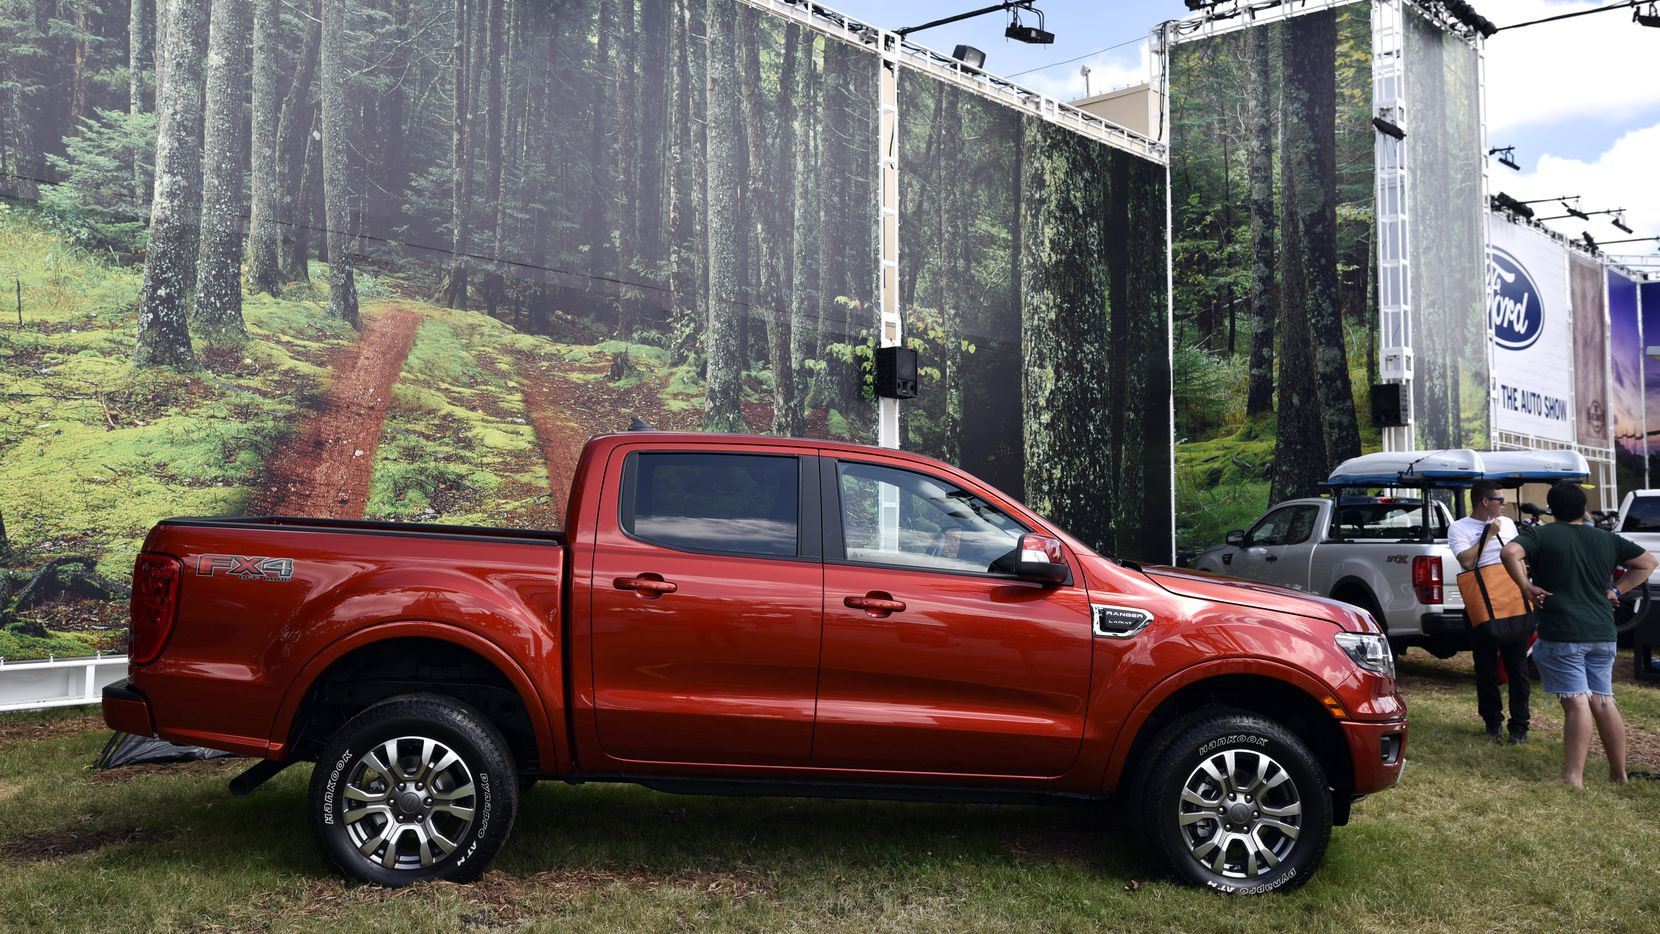 The 2019 Ford Ranger on display at the State Fair of Texas.